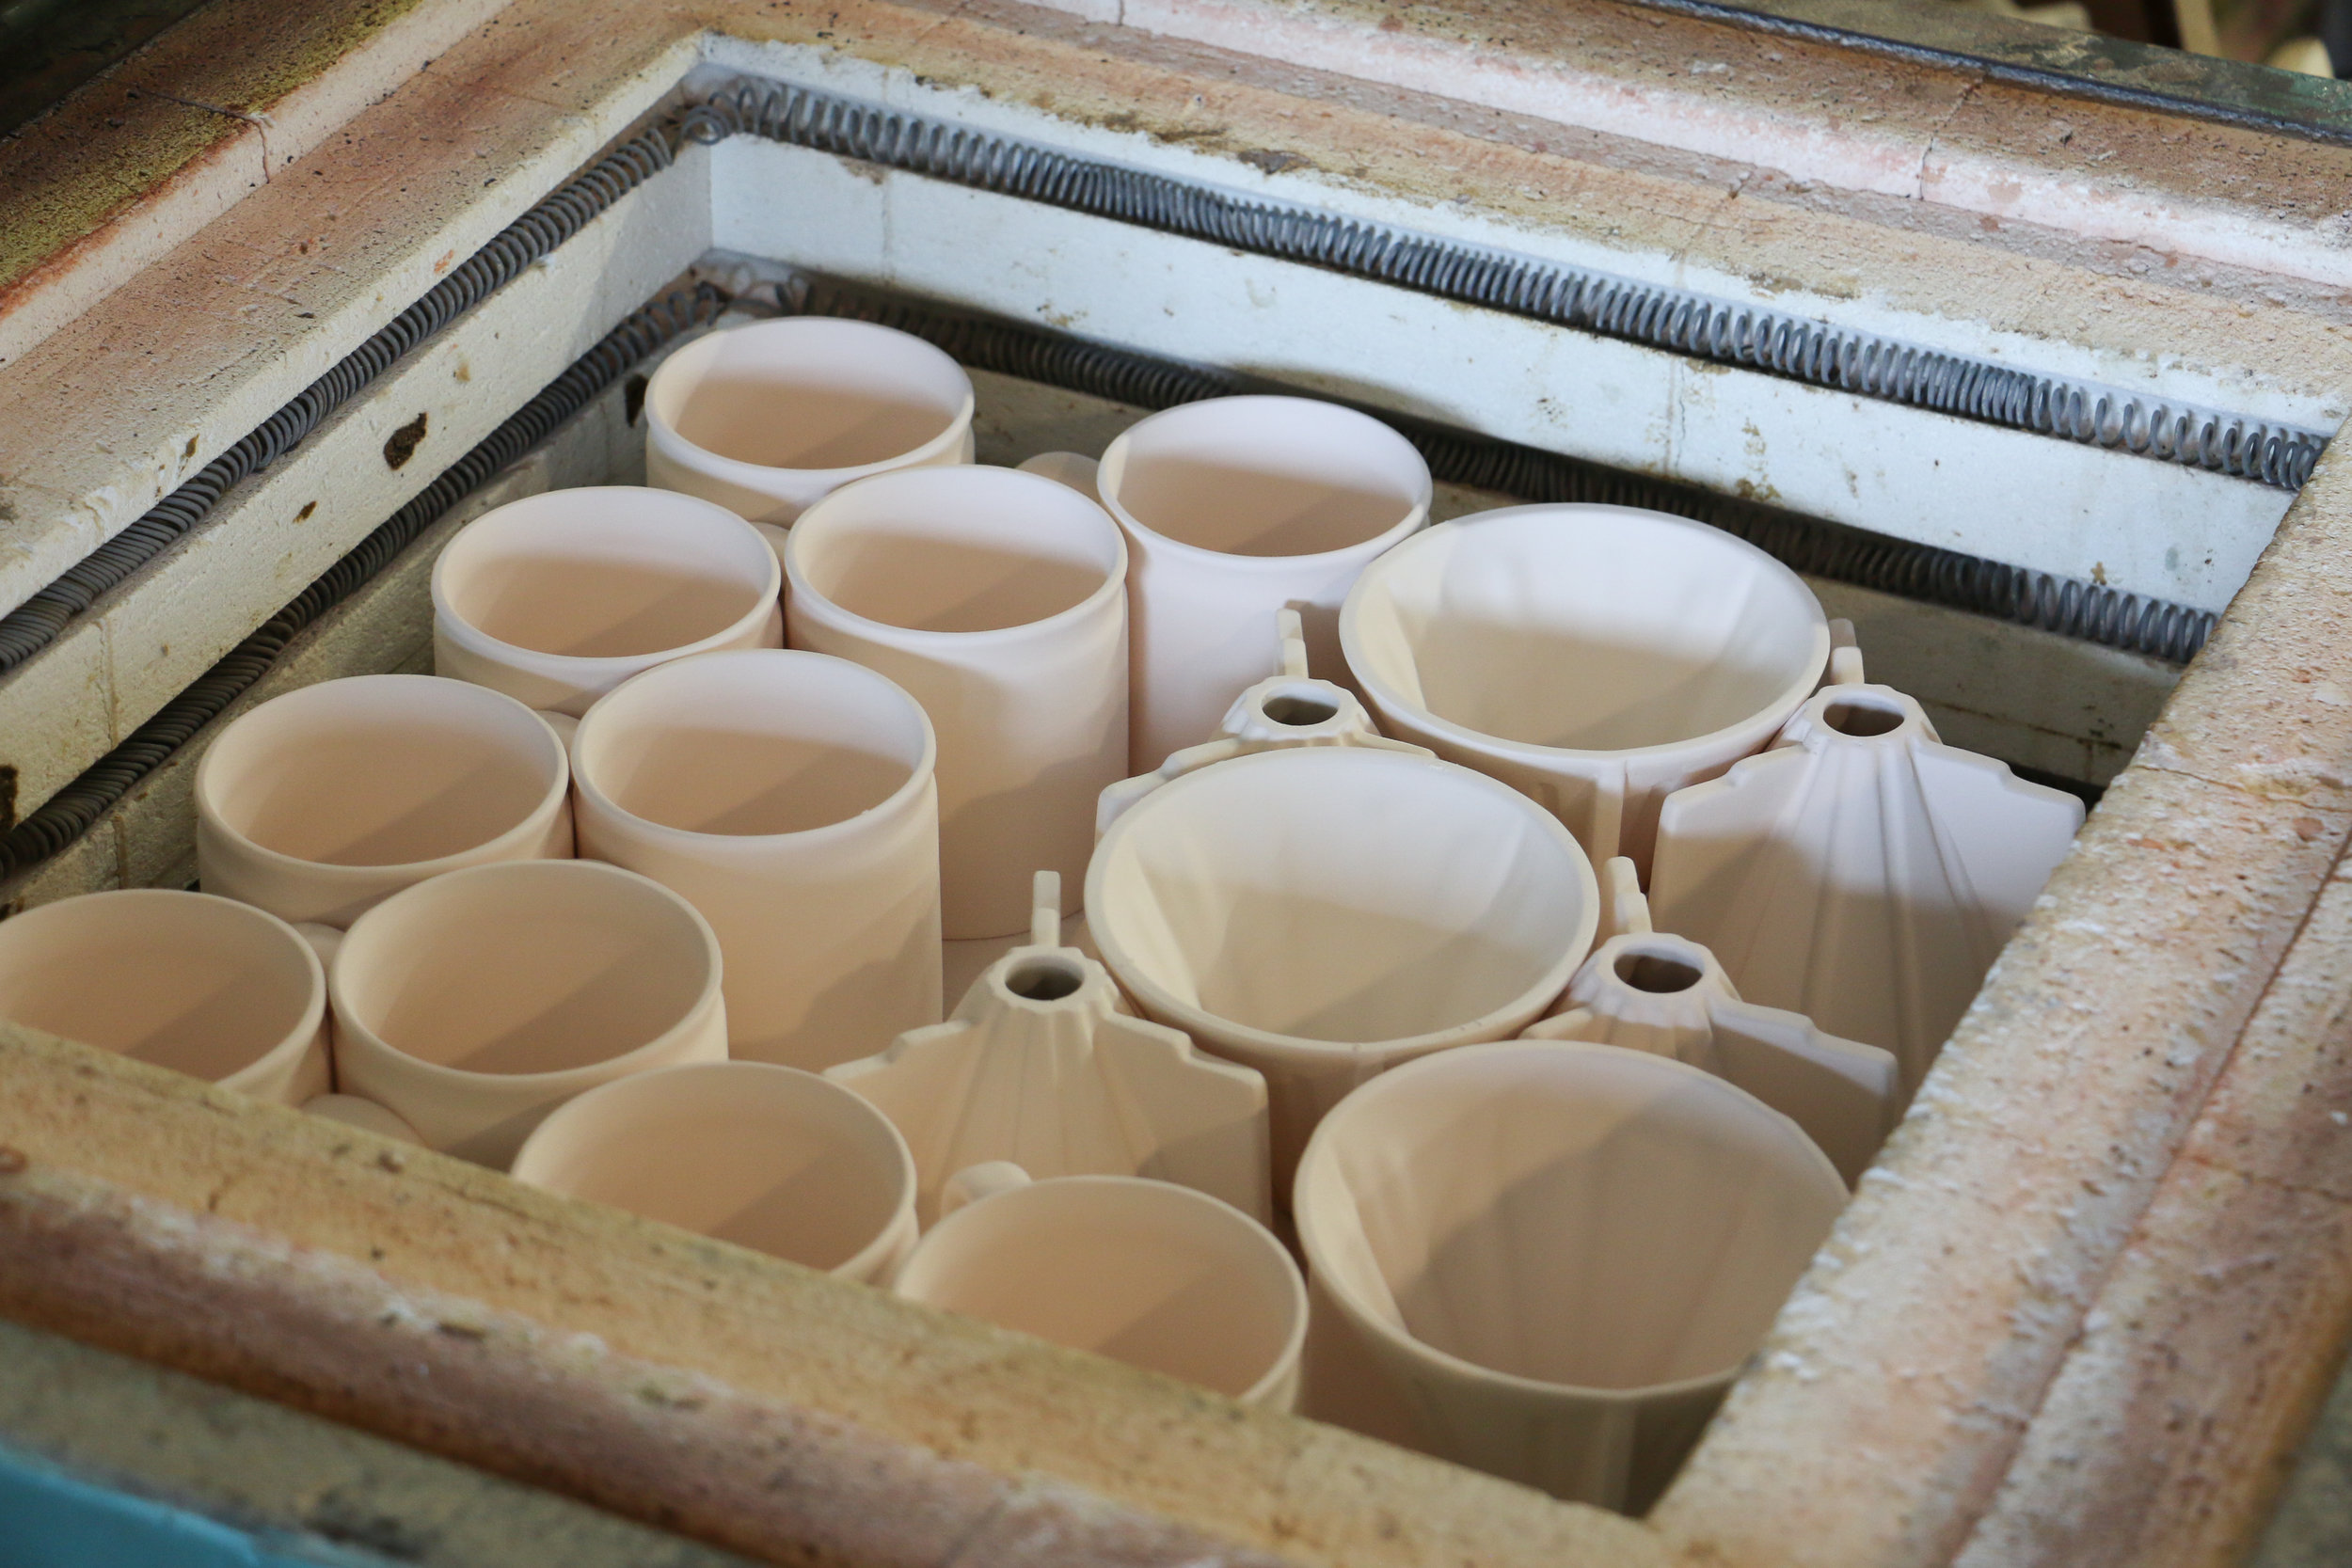 Buy Taus Ceramic online at Kaolin store NZ made and hand crafted